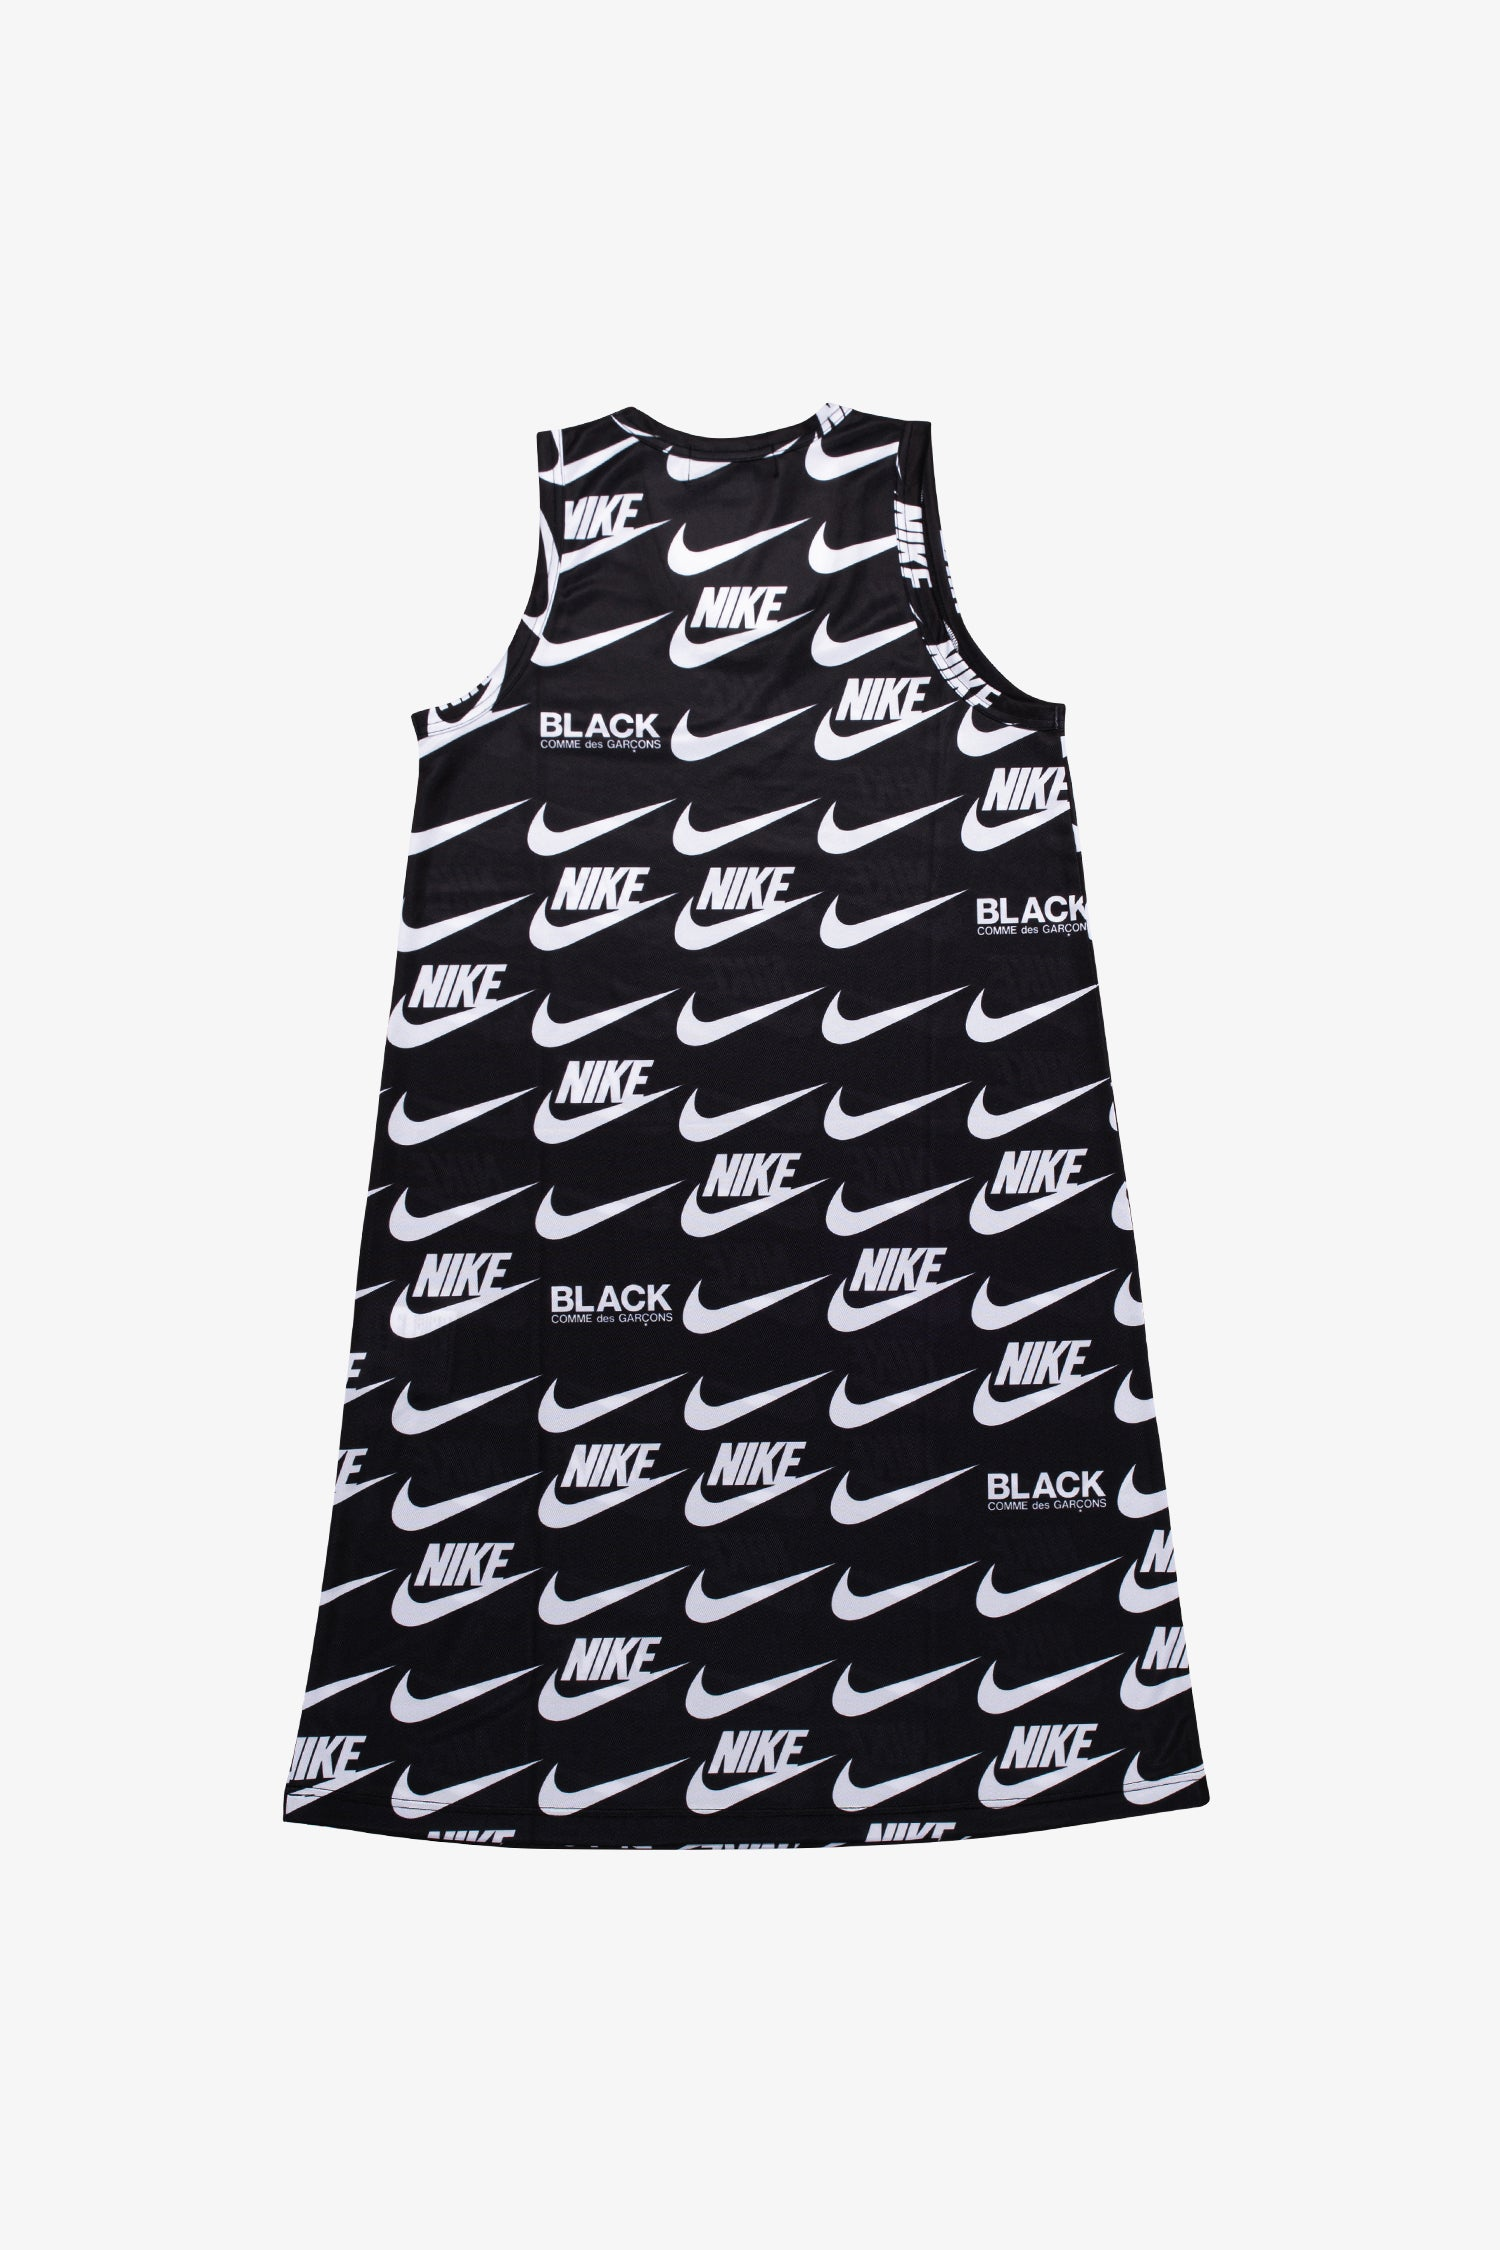 Selectshop FRAME - COMME DES GARCONS BLACK Nike Sleeveless Swoosh Midi Dress Dress Dubai